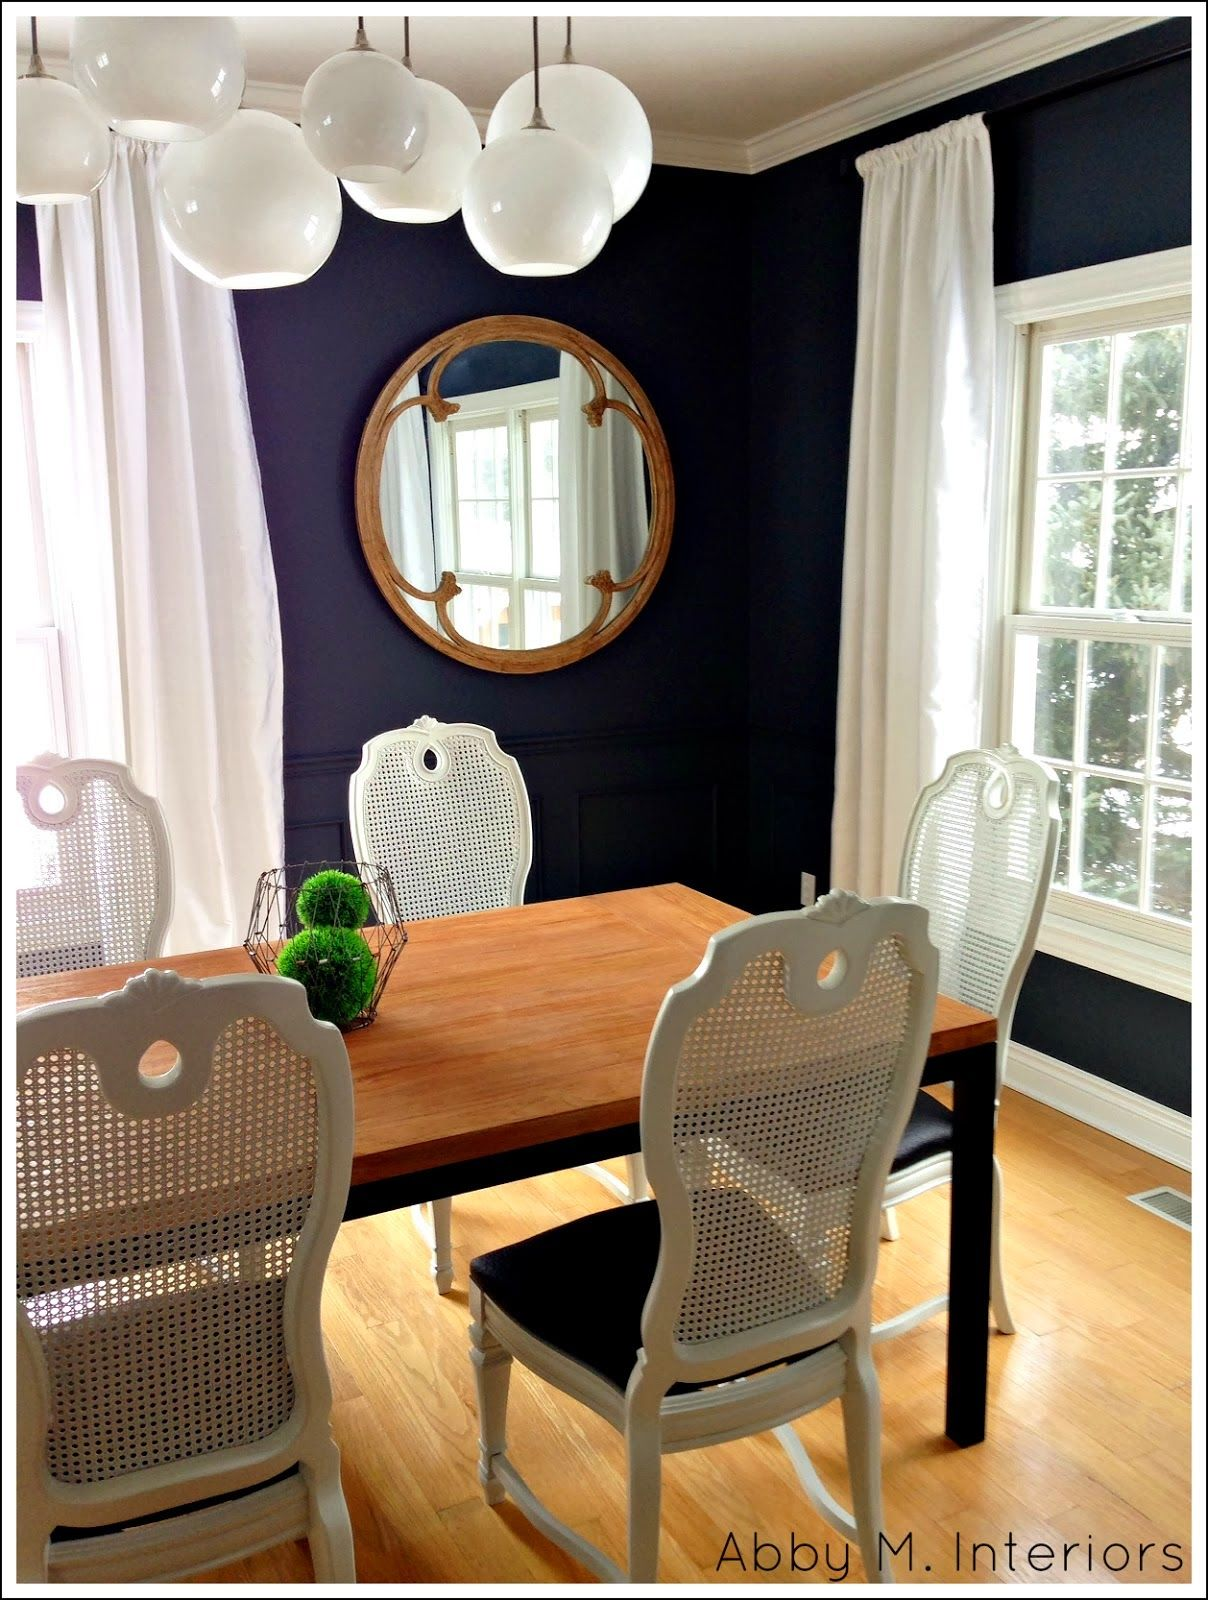 Abby M. Interiors The One Room Challenge week one